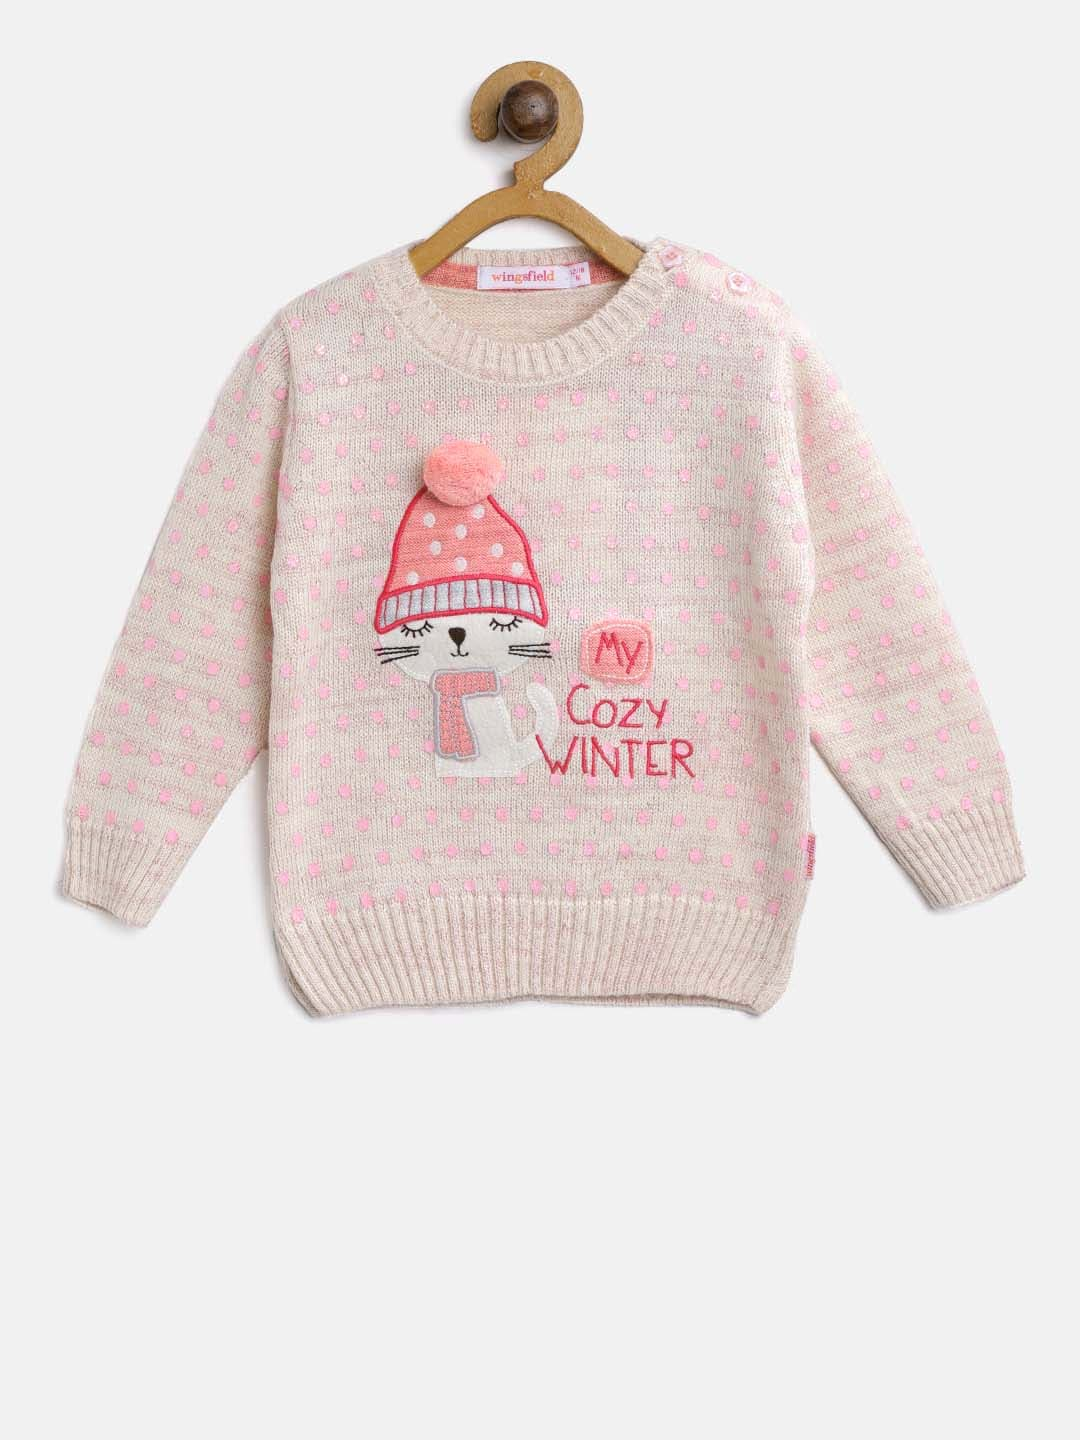 e0361aff6eb1 Wingsfield Sweaters - Buy Wingsfield Sweaters online in India